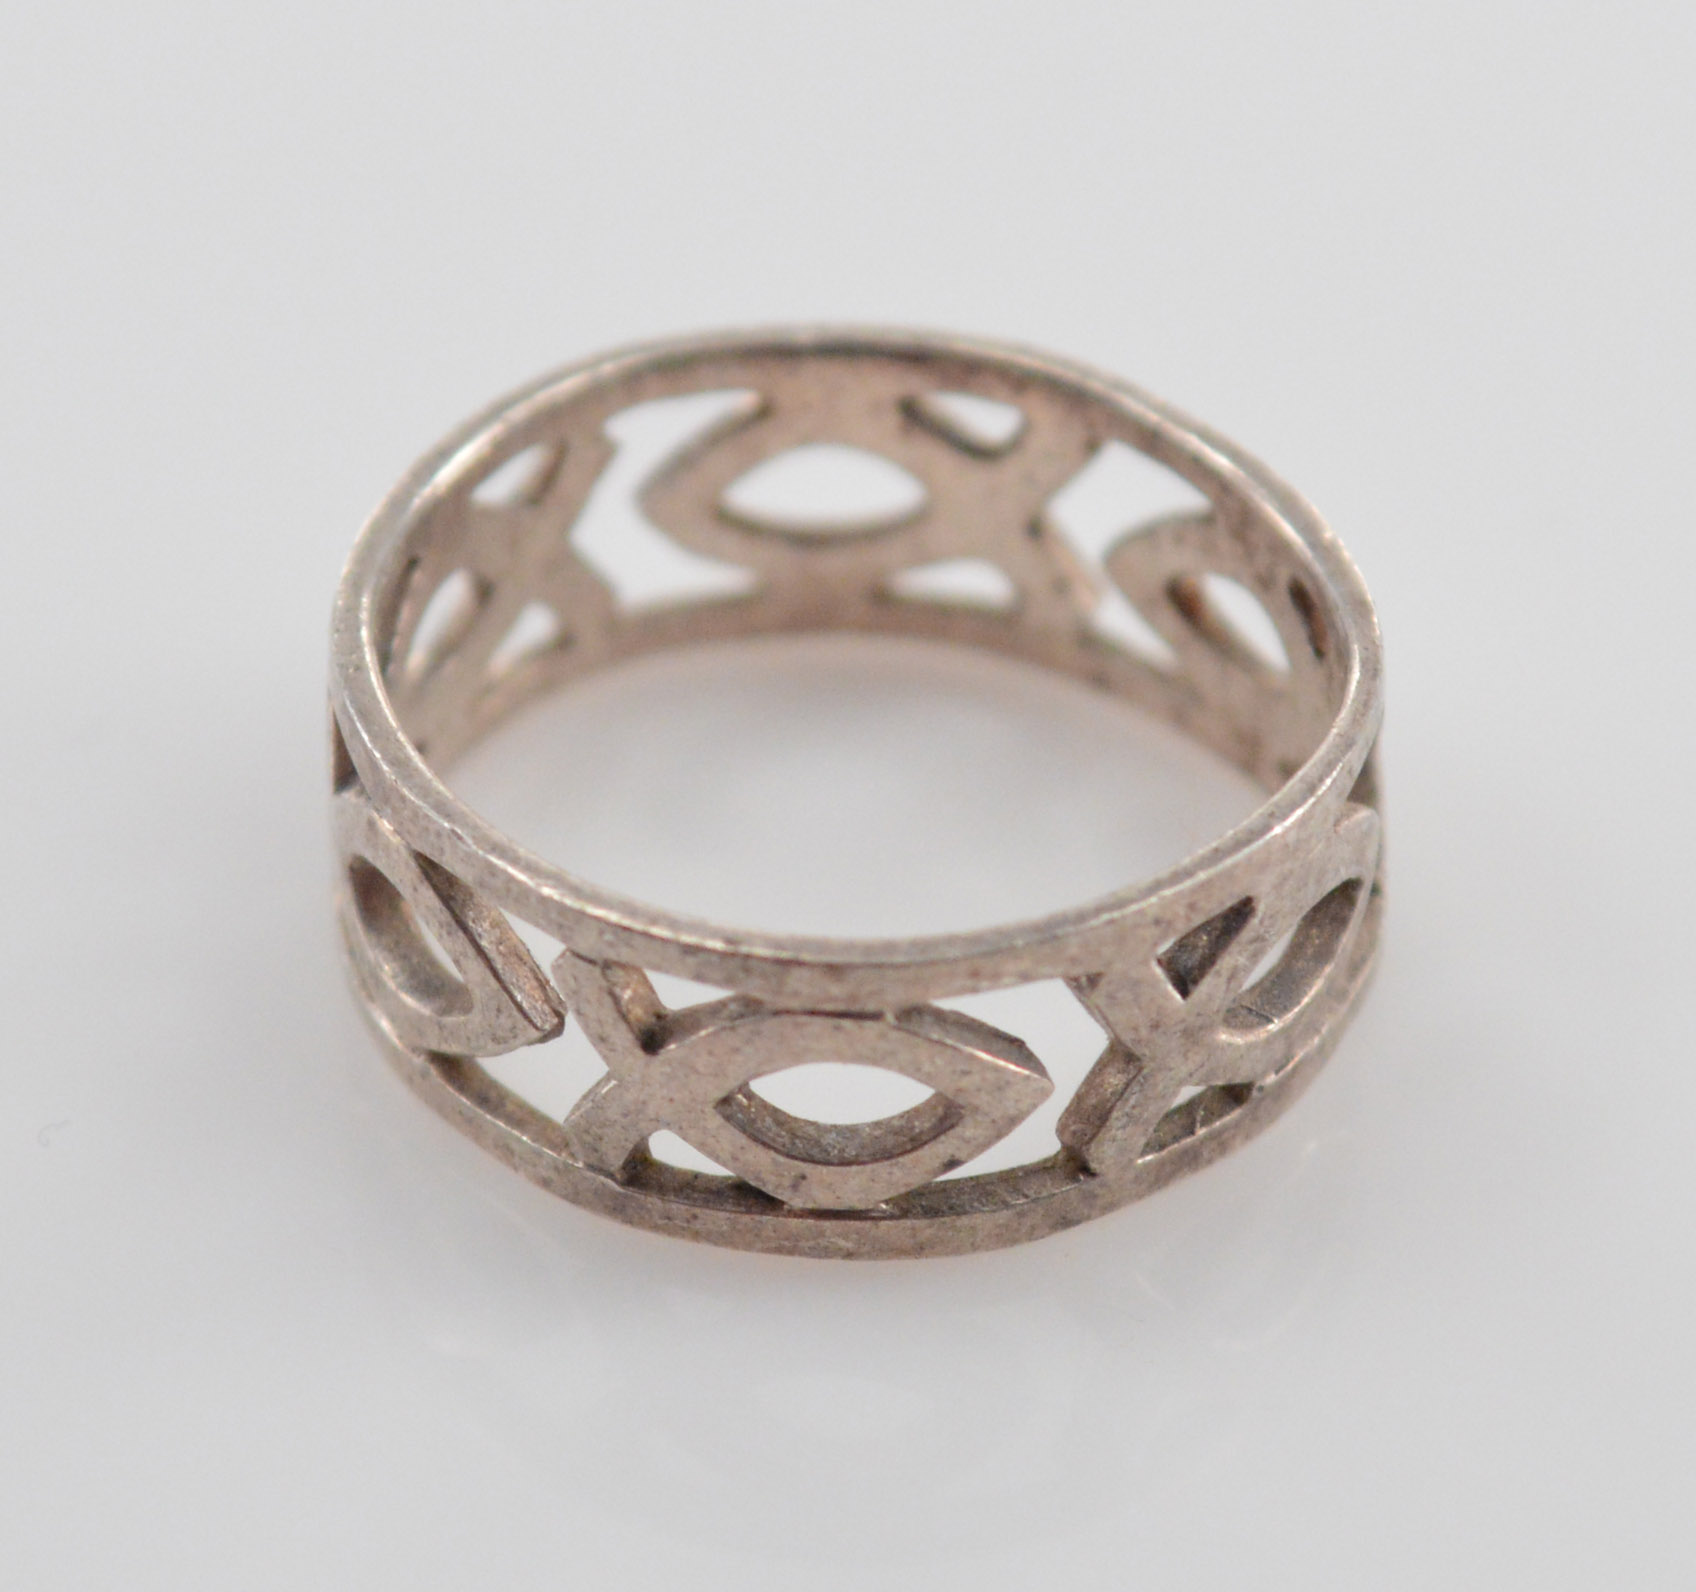 26g Solid Silver Christian Fish Symbol Cut Out Band Sterling Ring